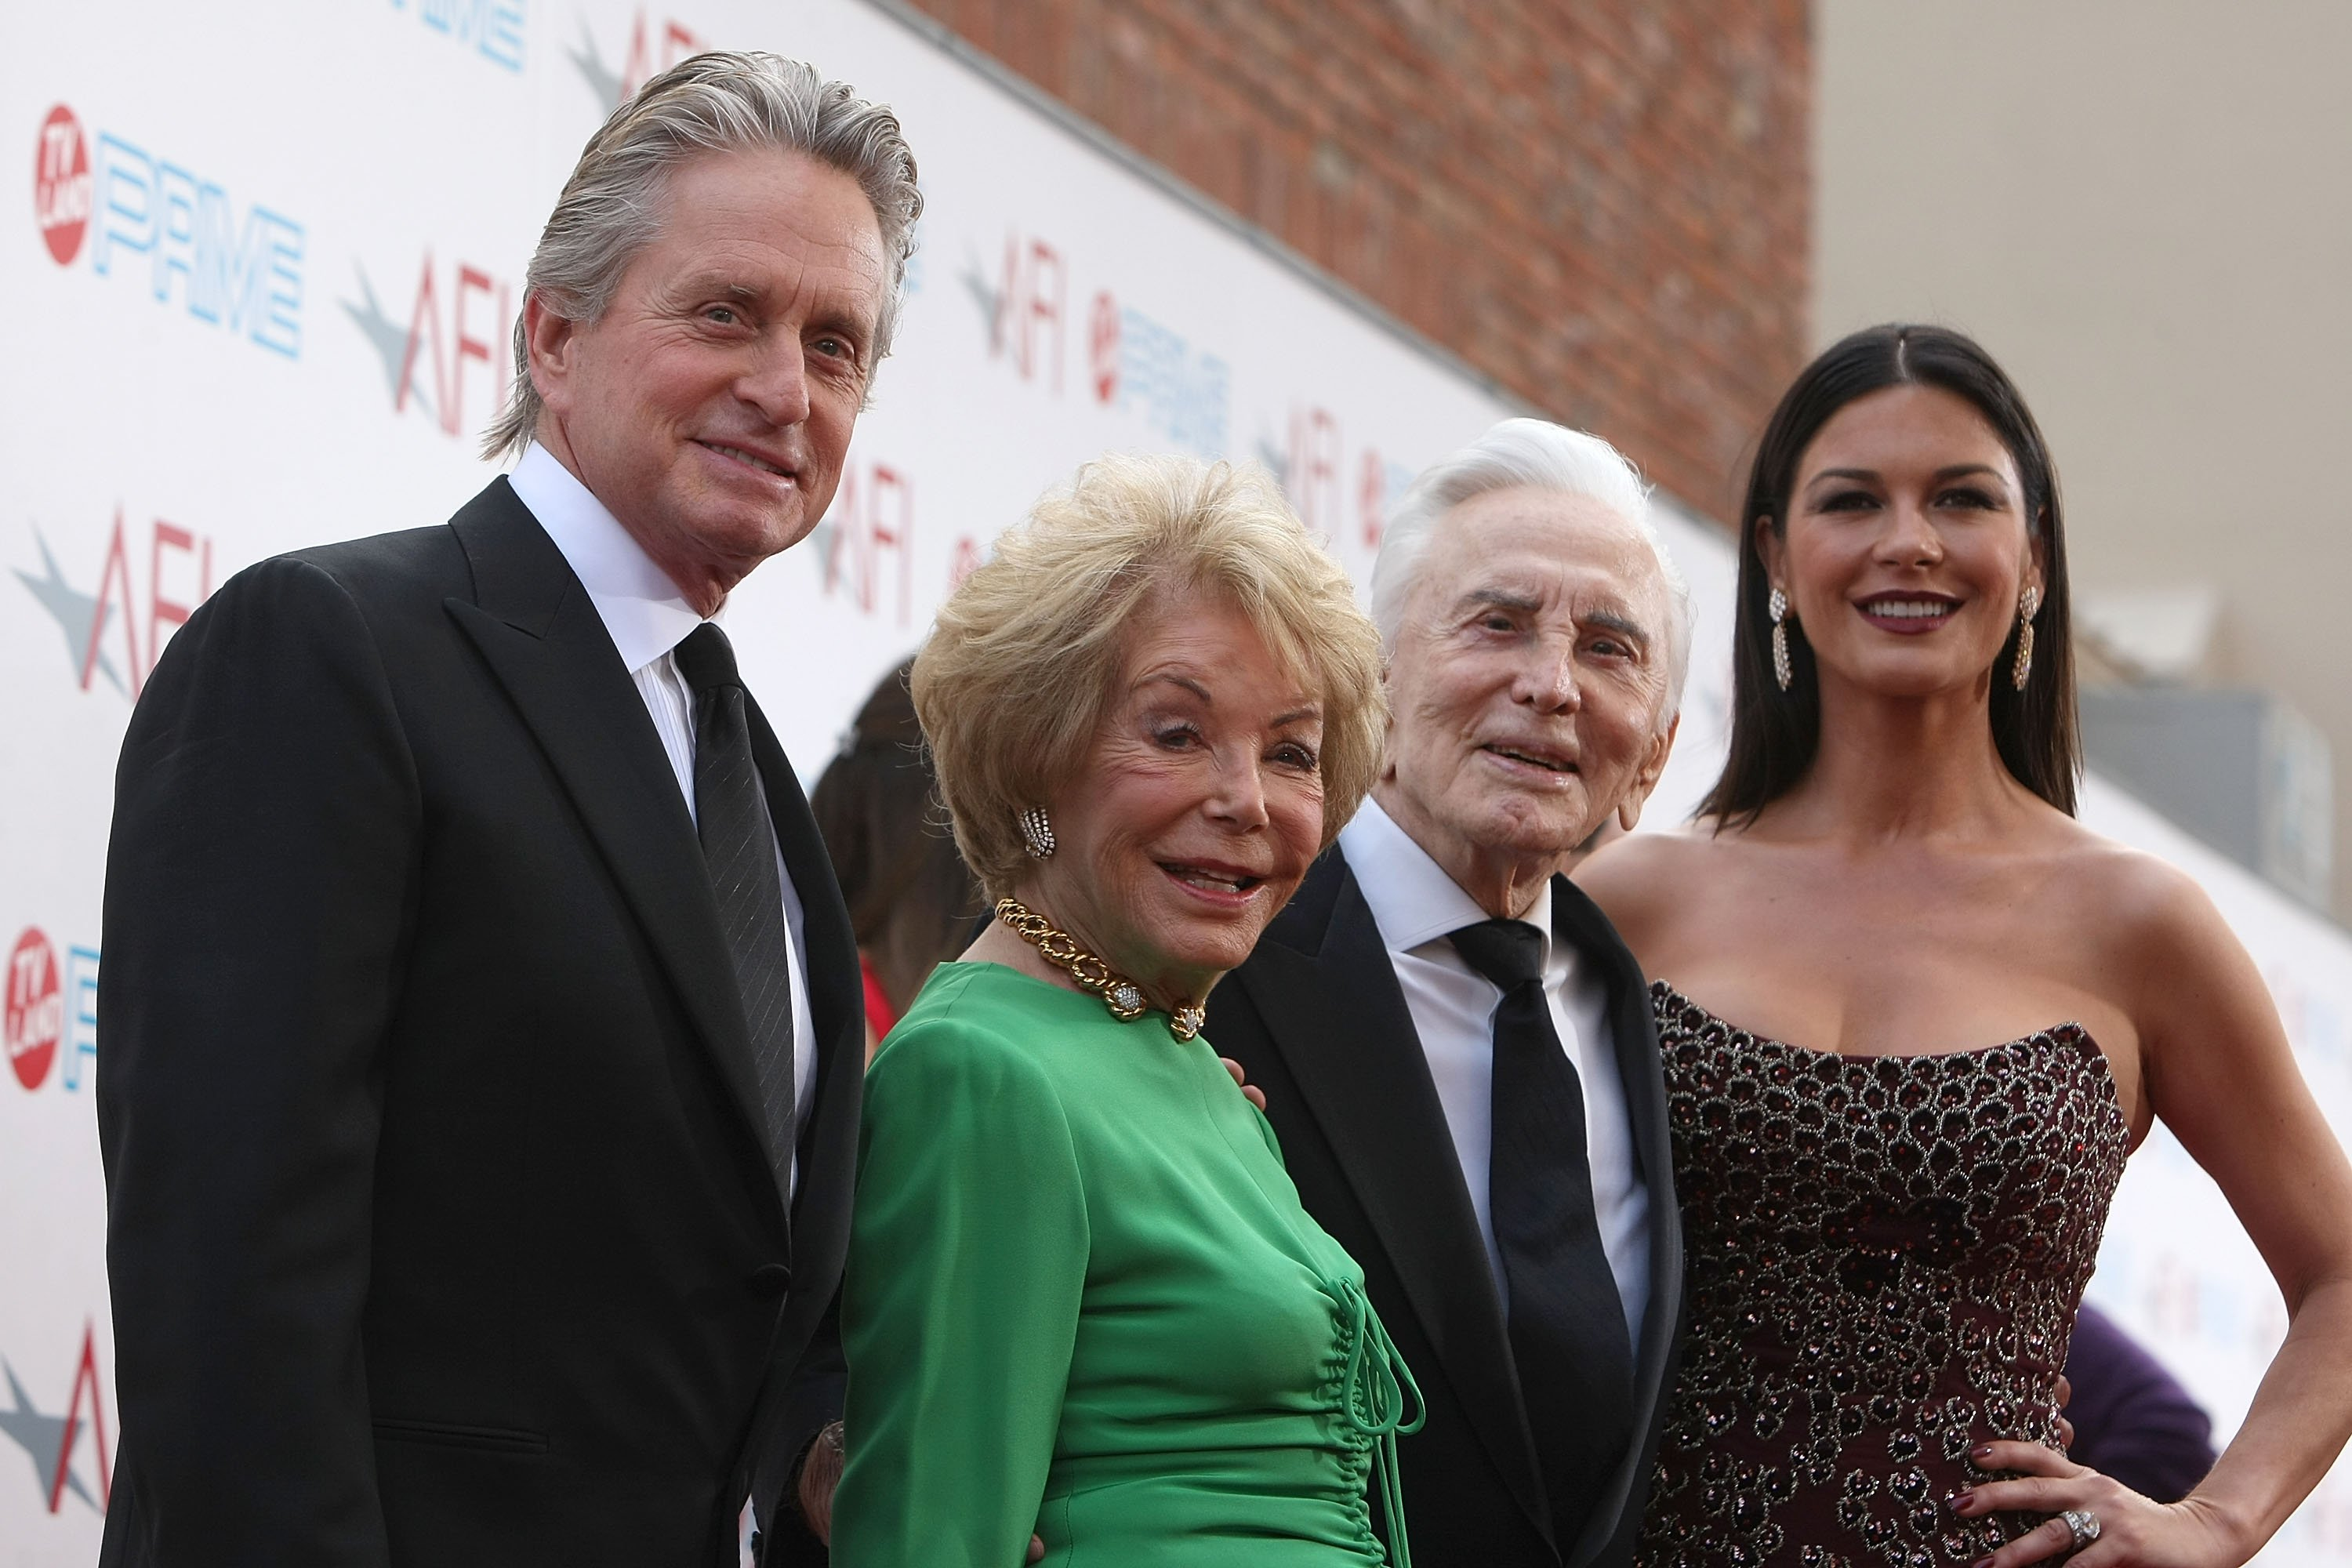 Kirk Douglas and his family at an event | Photo: Getty Images